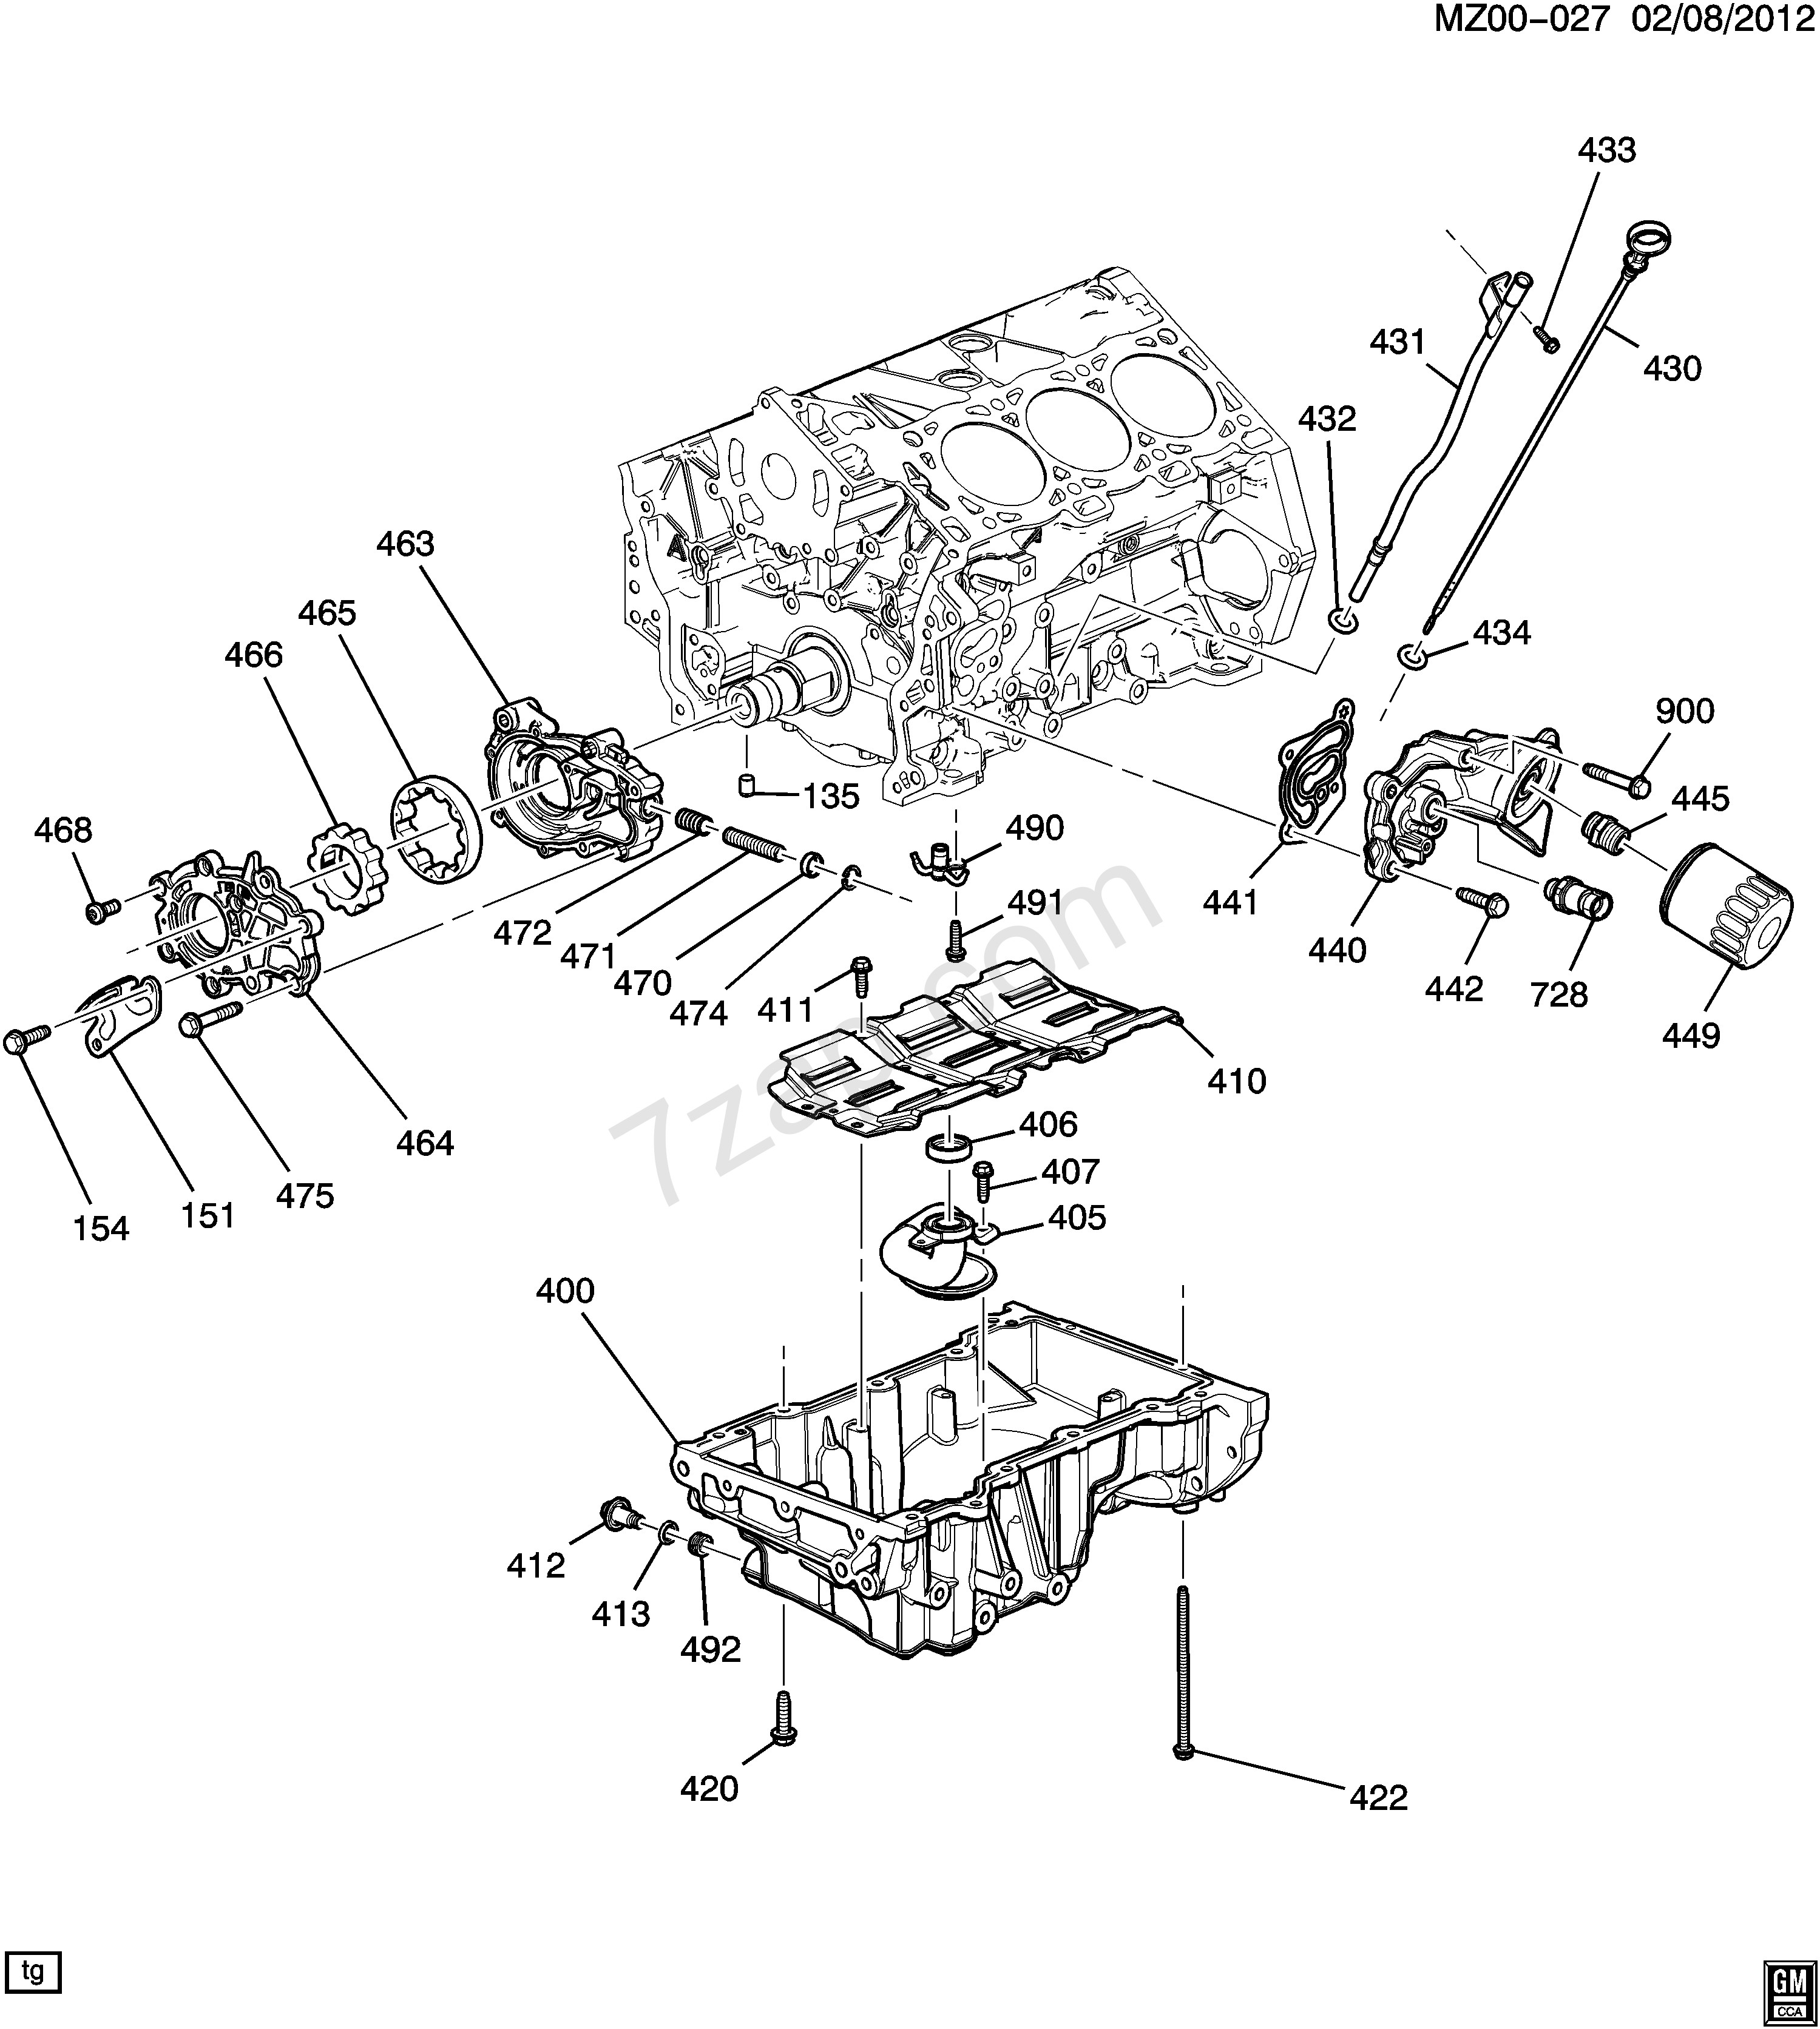 Flat Head Engine Diagram 2009 2010 Rv1 Engine asm 3 6l V6 Part 5 Oil Pump Oil Pan & Related Of Flat Head Engine Diagram